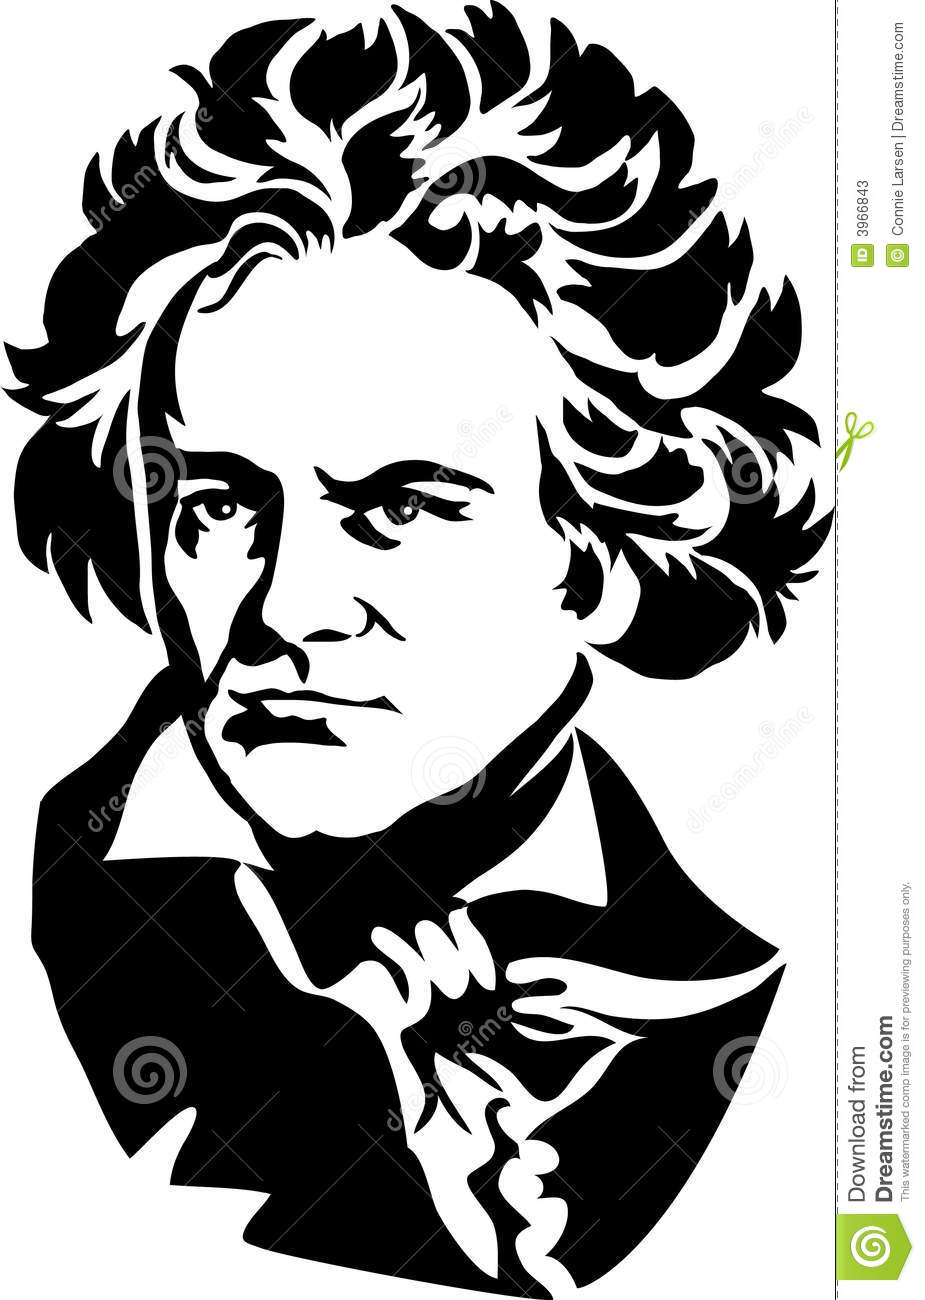 Black and White Illustration of the famous German composer Ludwig van ...